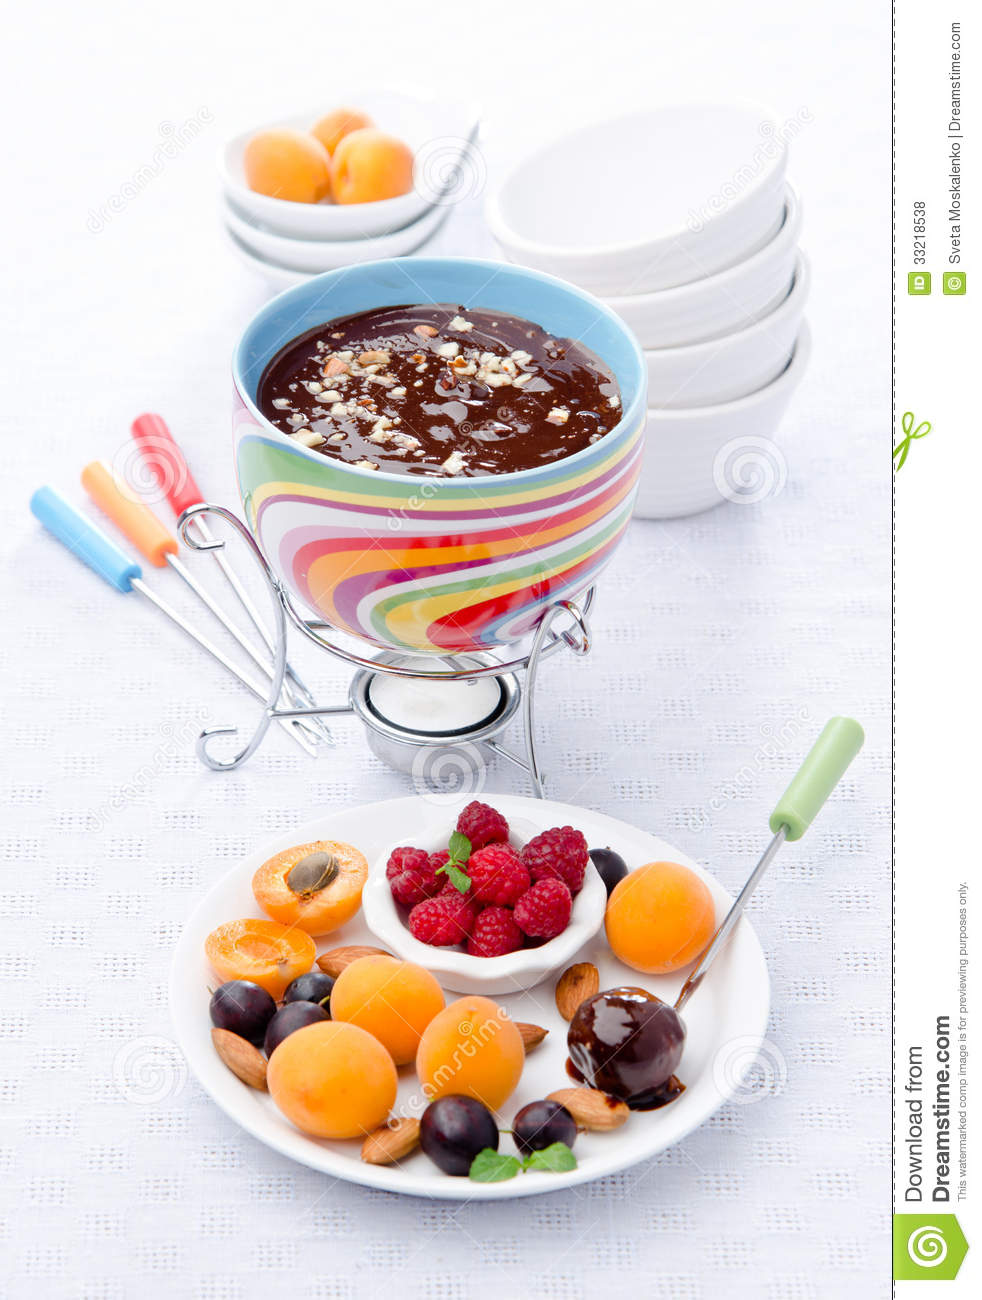 Fondue Chocolate With Almond Royalty Free Stock Photos ...